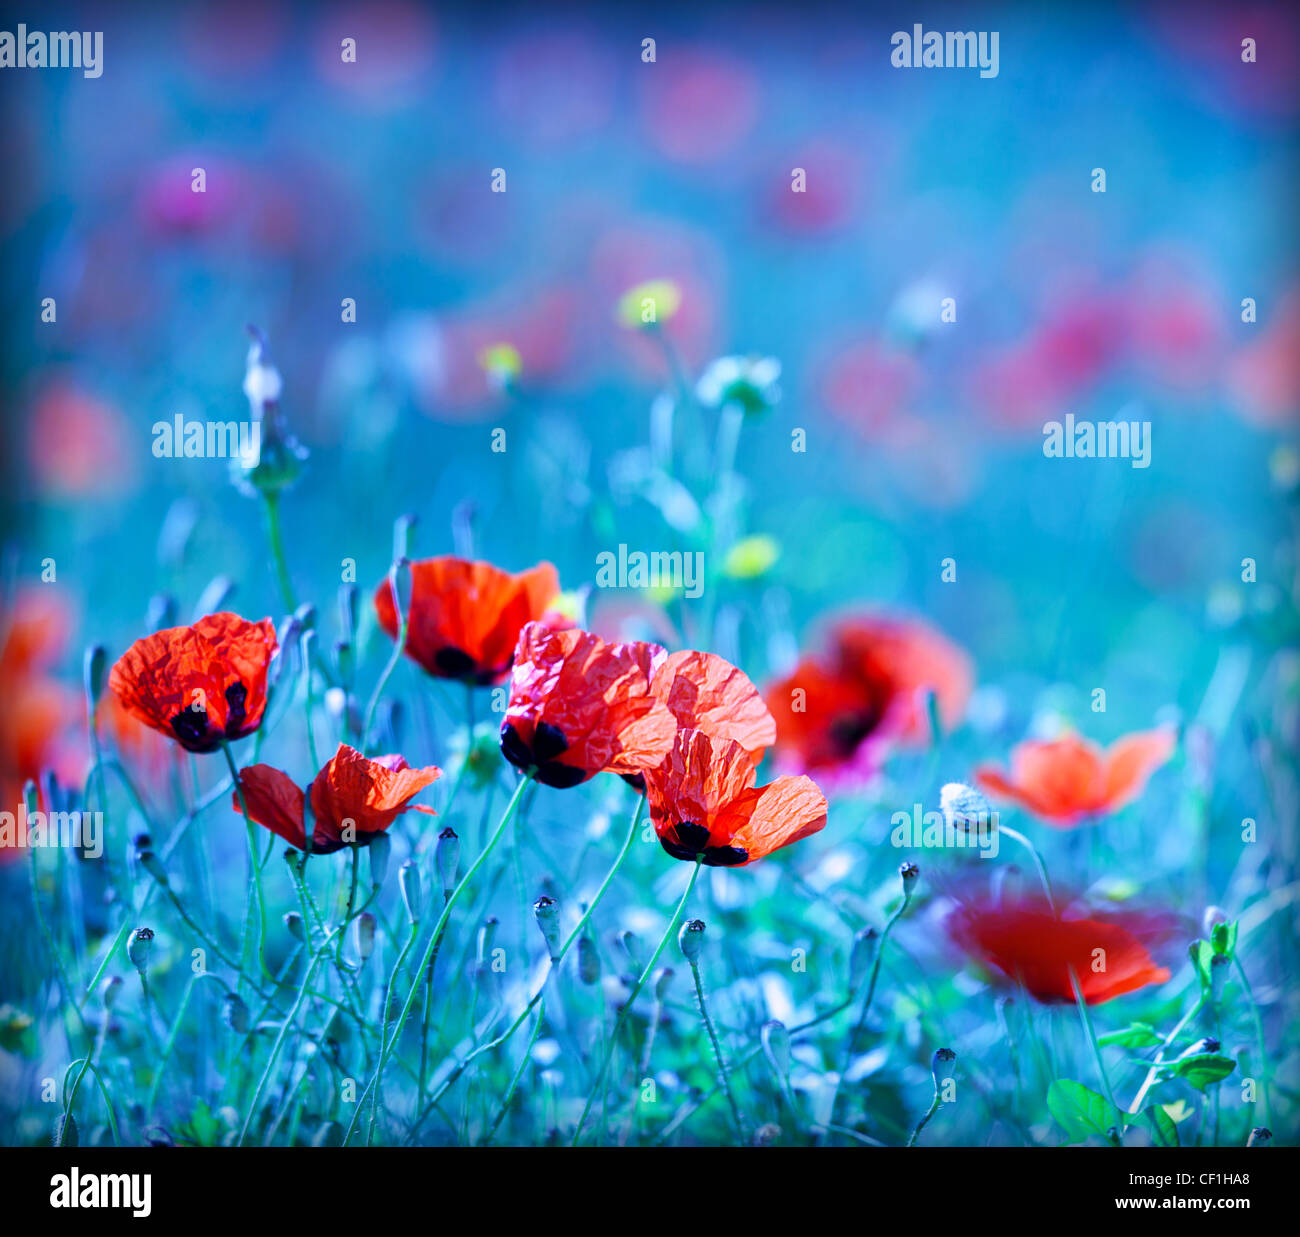 Poppy flower field at night with a dreamy blue cast and